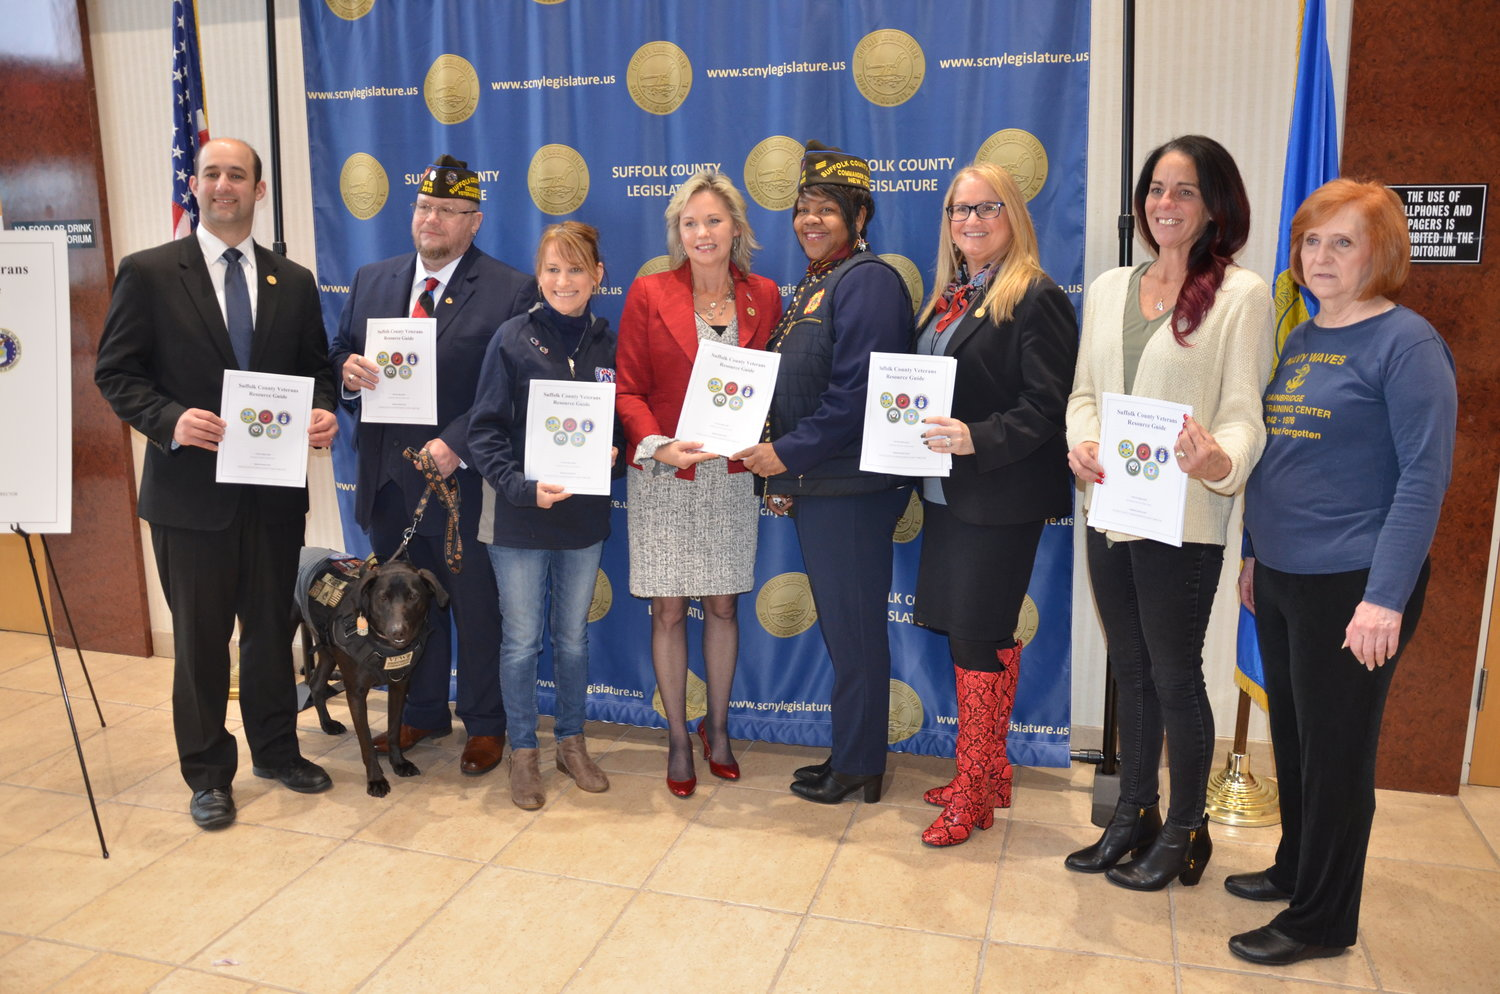 Suffolk legislators were joined by community advocates and by veterans to announce a new guide that compiles countywide resources for veterans.